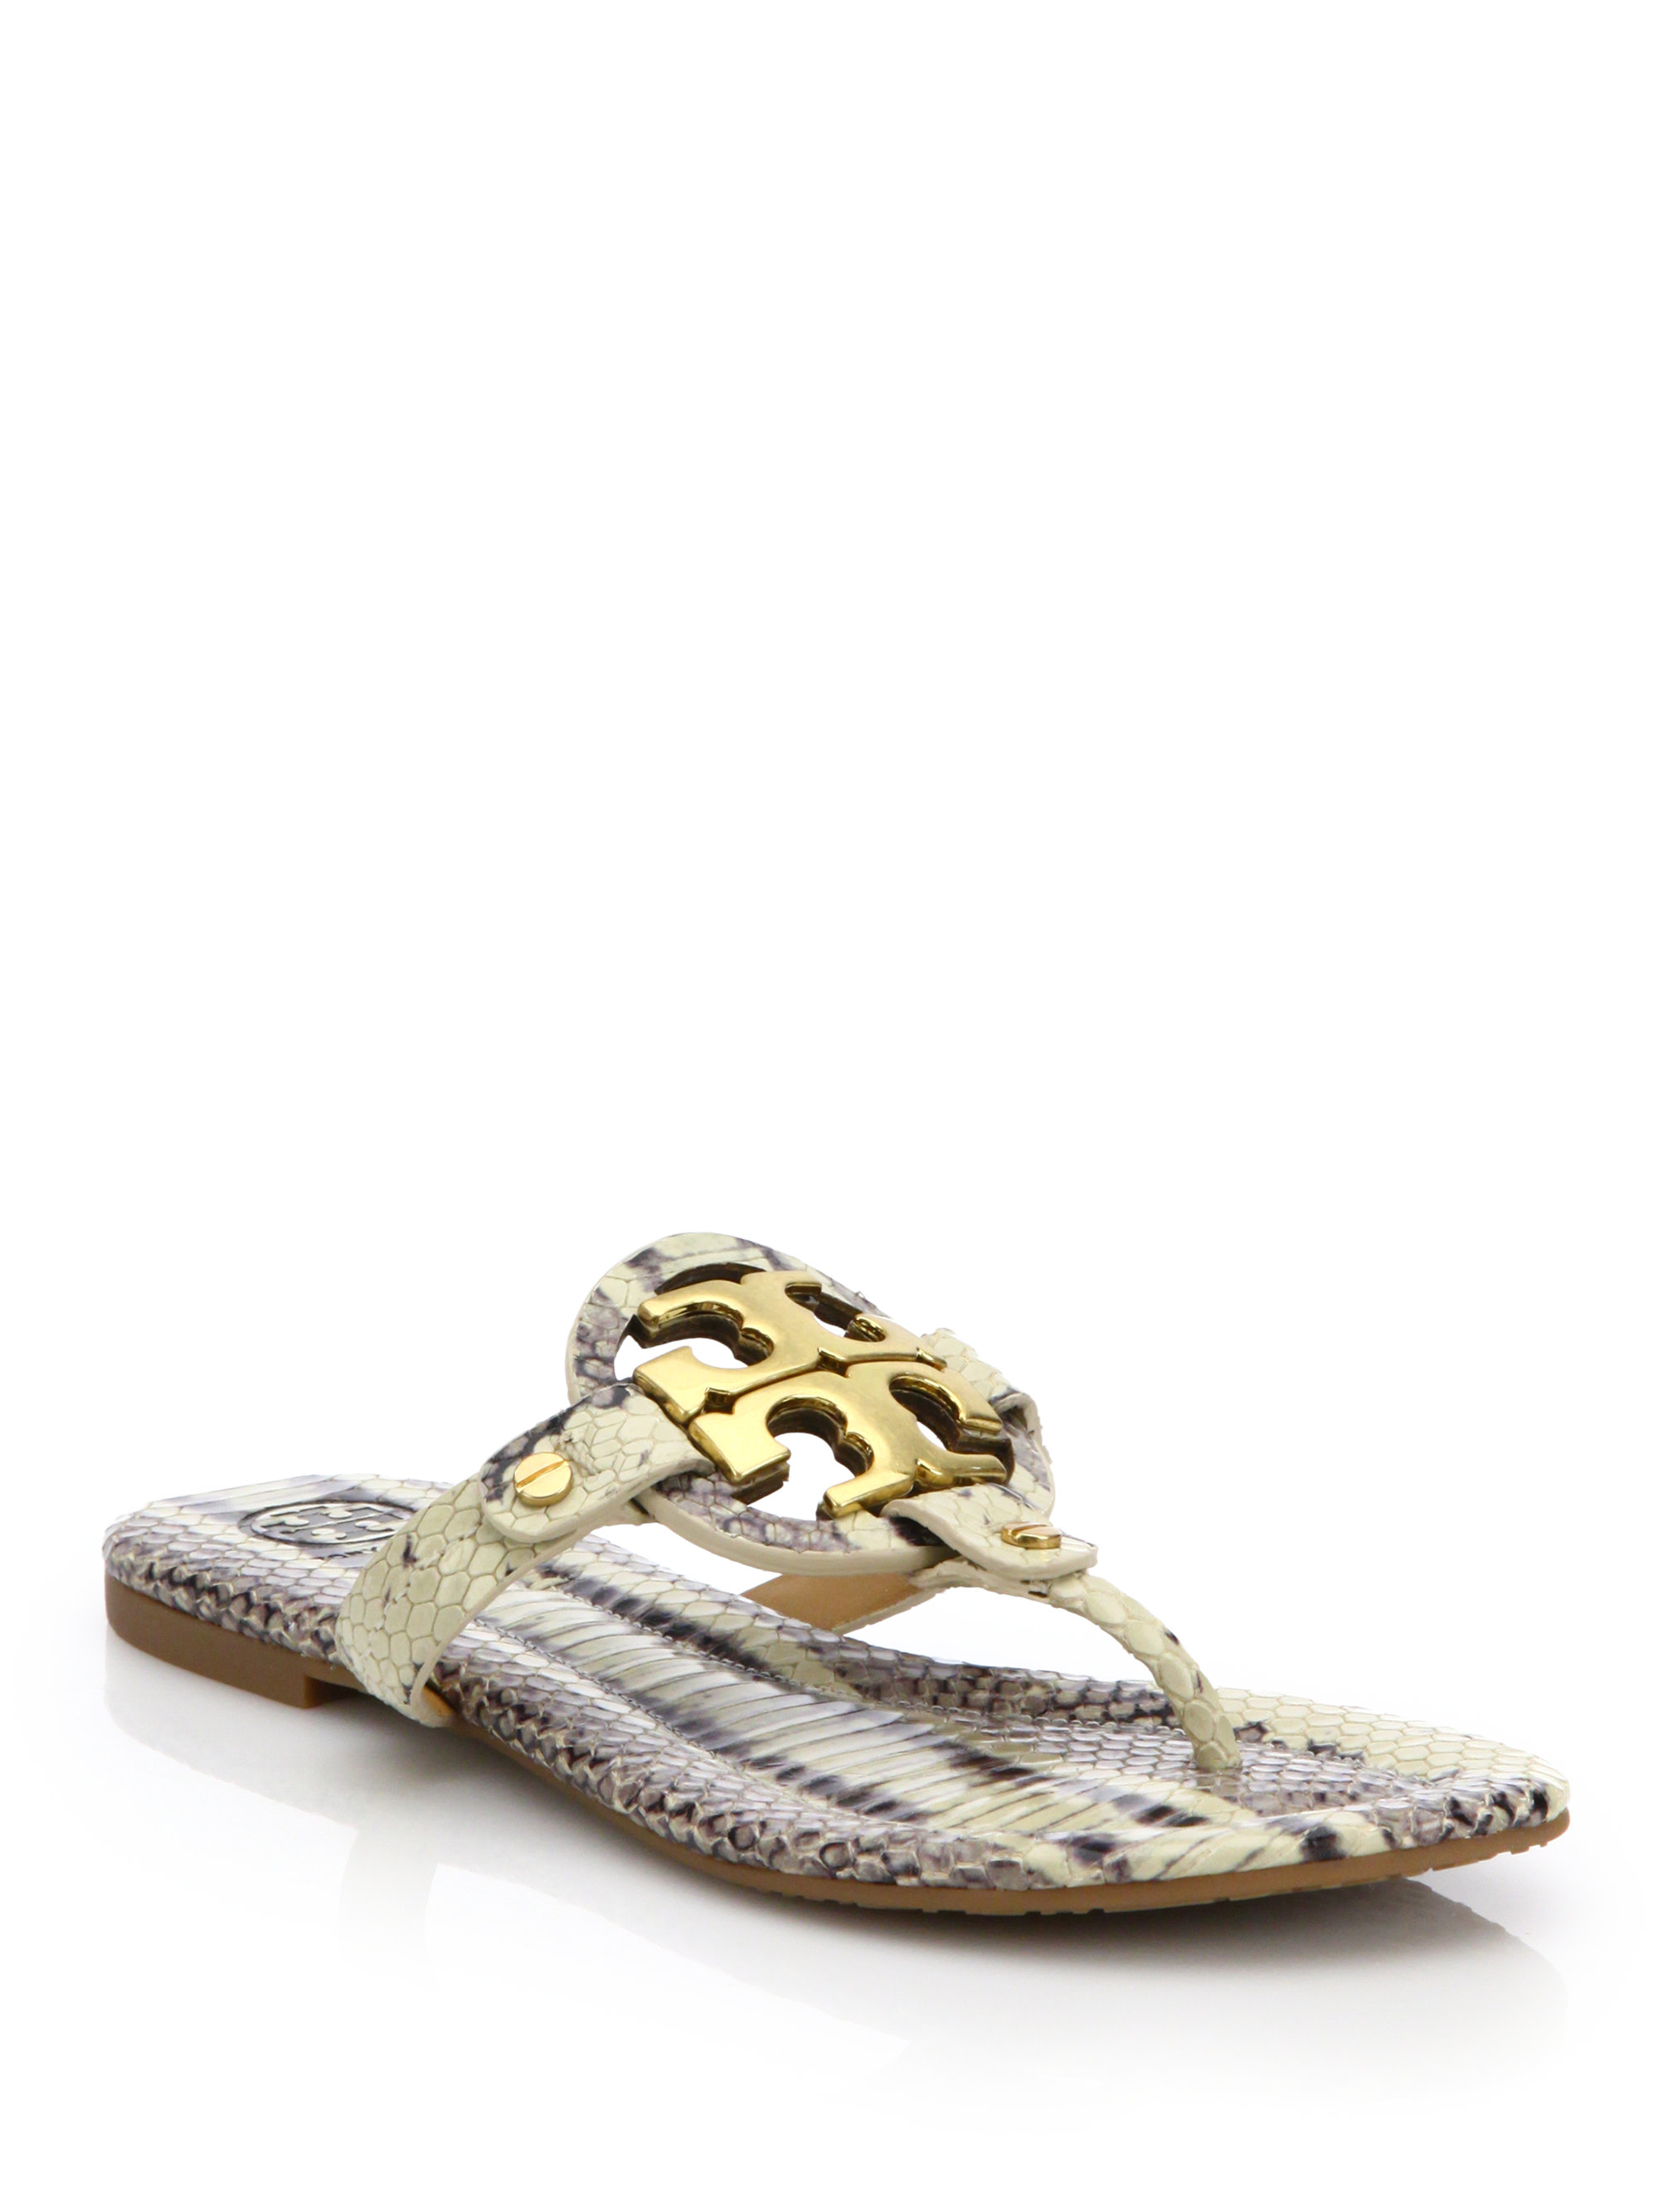 f8f400f1c ... denmark lyst tory burch miller snake embossed leather logo thong sandals  7361d a9fa4